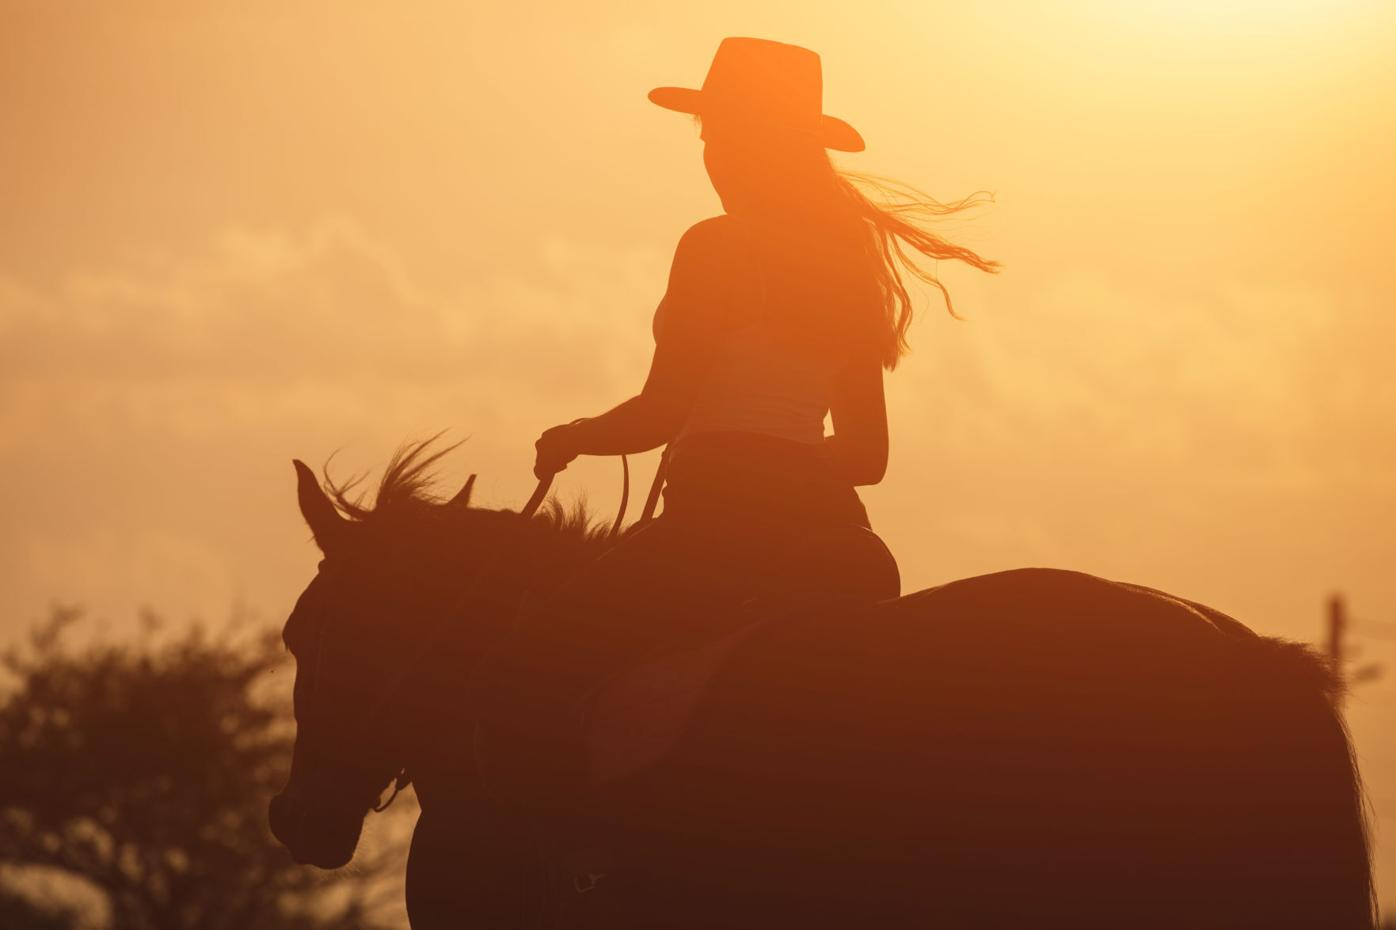 Sunset,Golden,Silhouette,Of,Young,Cowgirl,In,Hat,Riding,Her